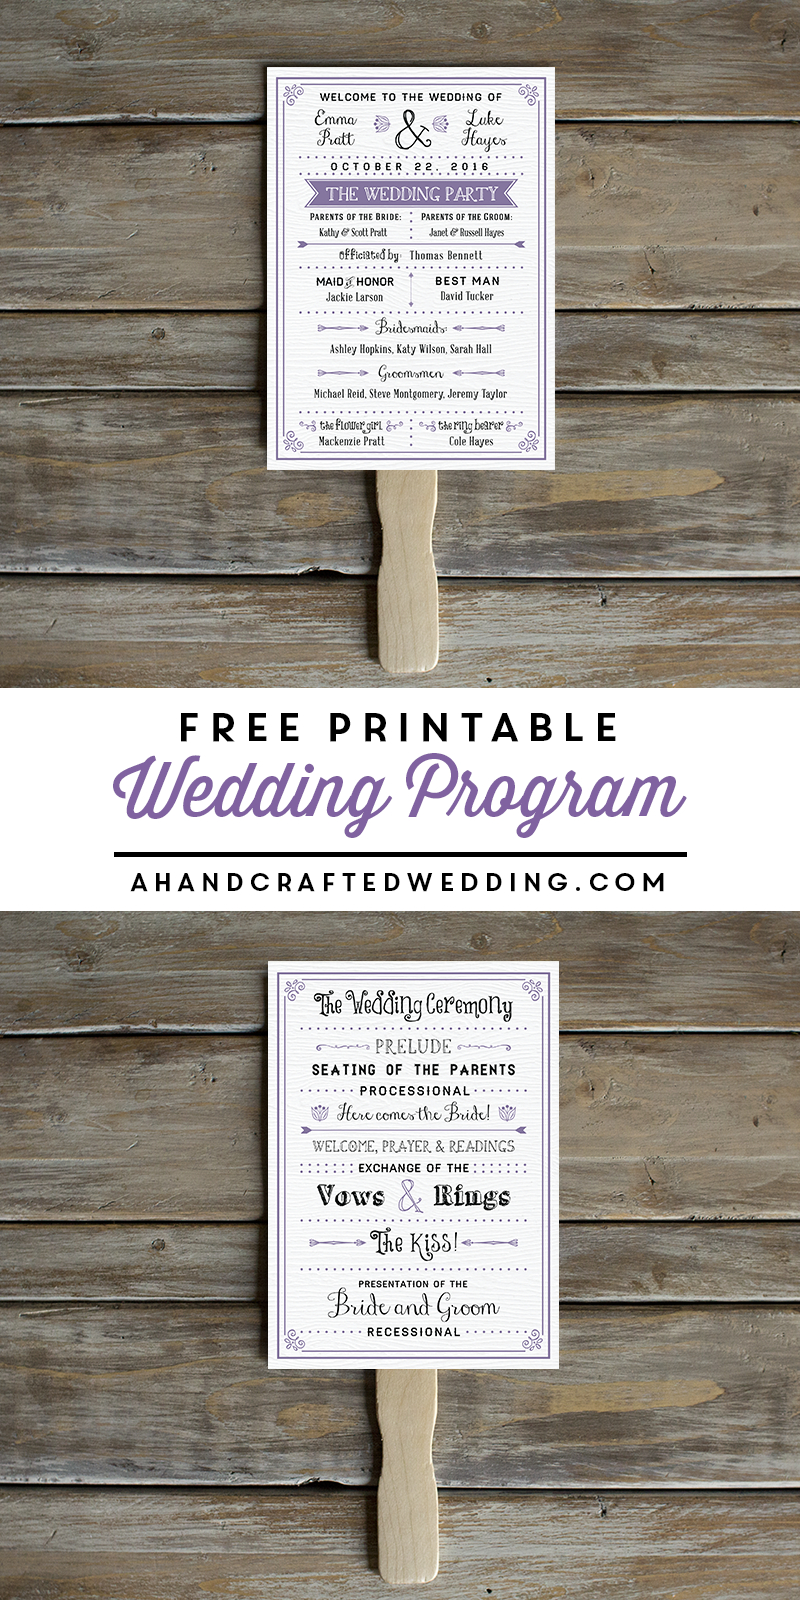 Free Printable Wedding Program | Crafty 2 The Core~Diy Galore - Free Printable Fan Wedding Programs